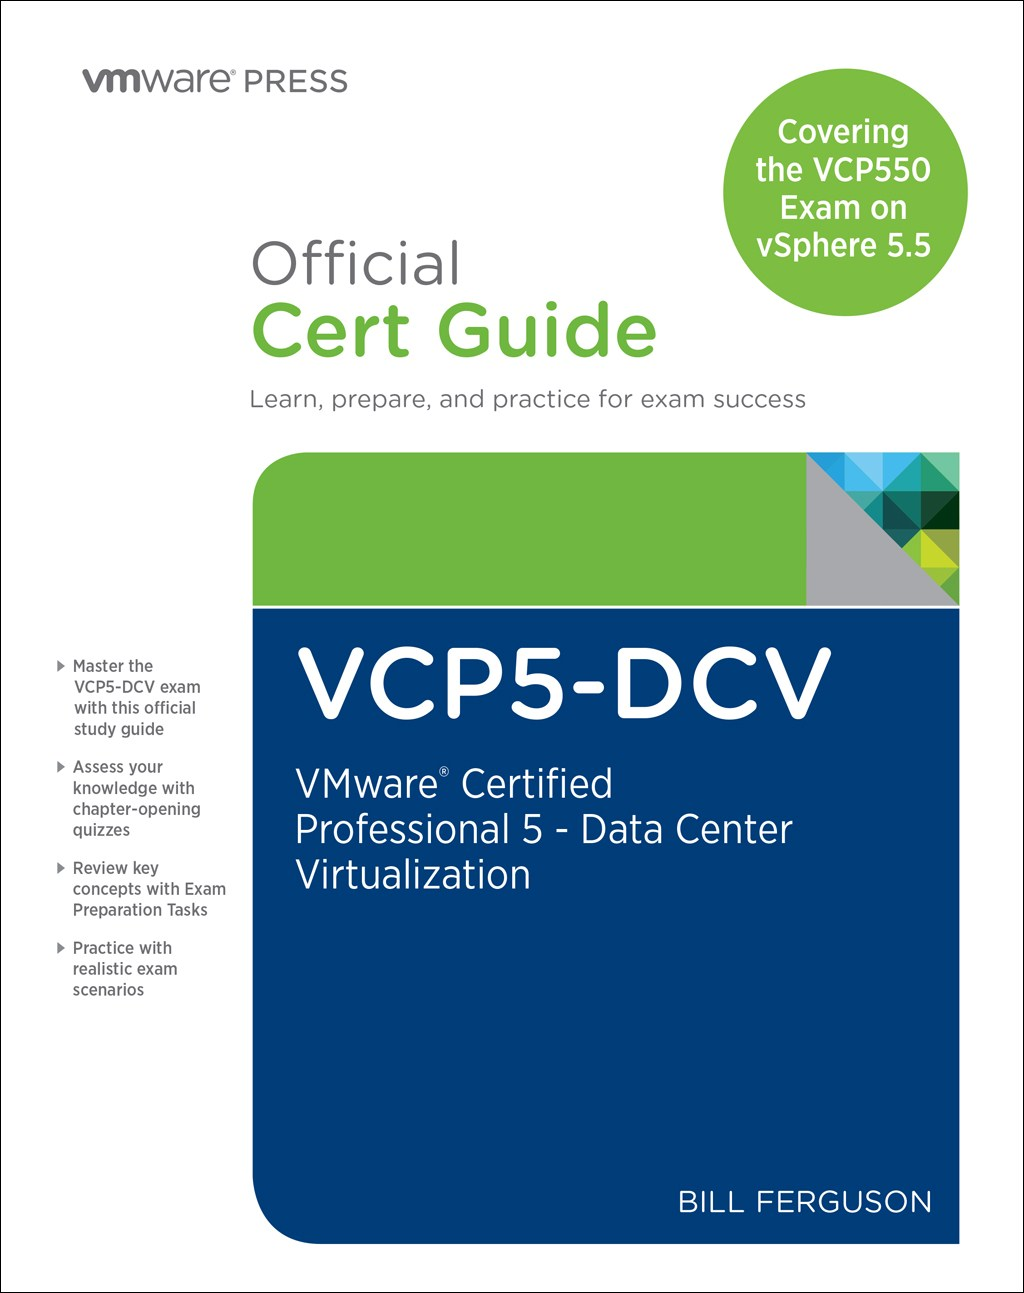 VCP5-DCV Official Certification guide (Covering the VCP550 Exam): VMware Certified Professional 5 - Data heart Virtualization, 2nd Edition